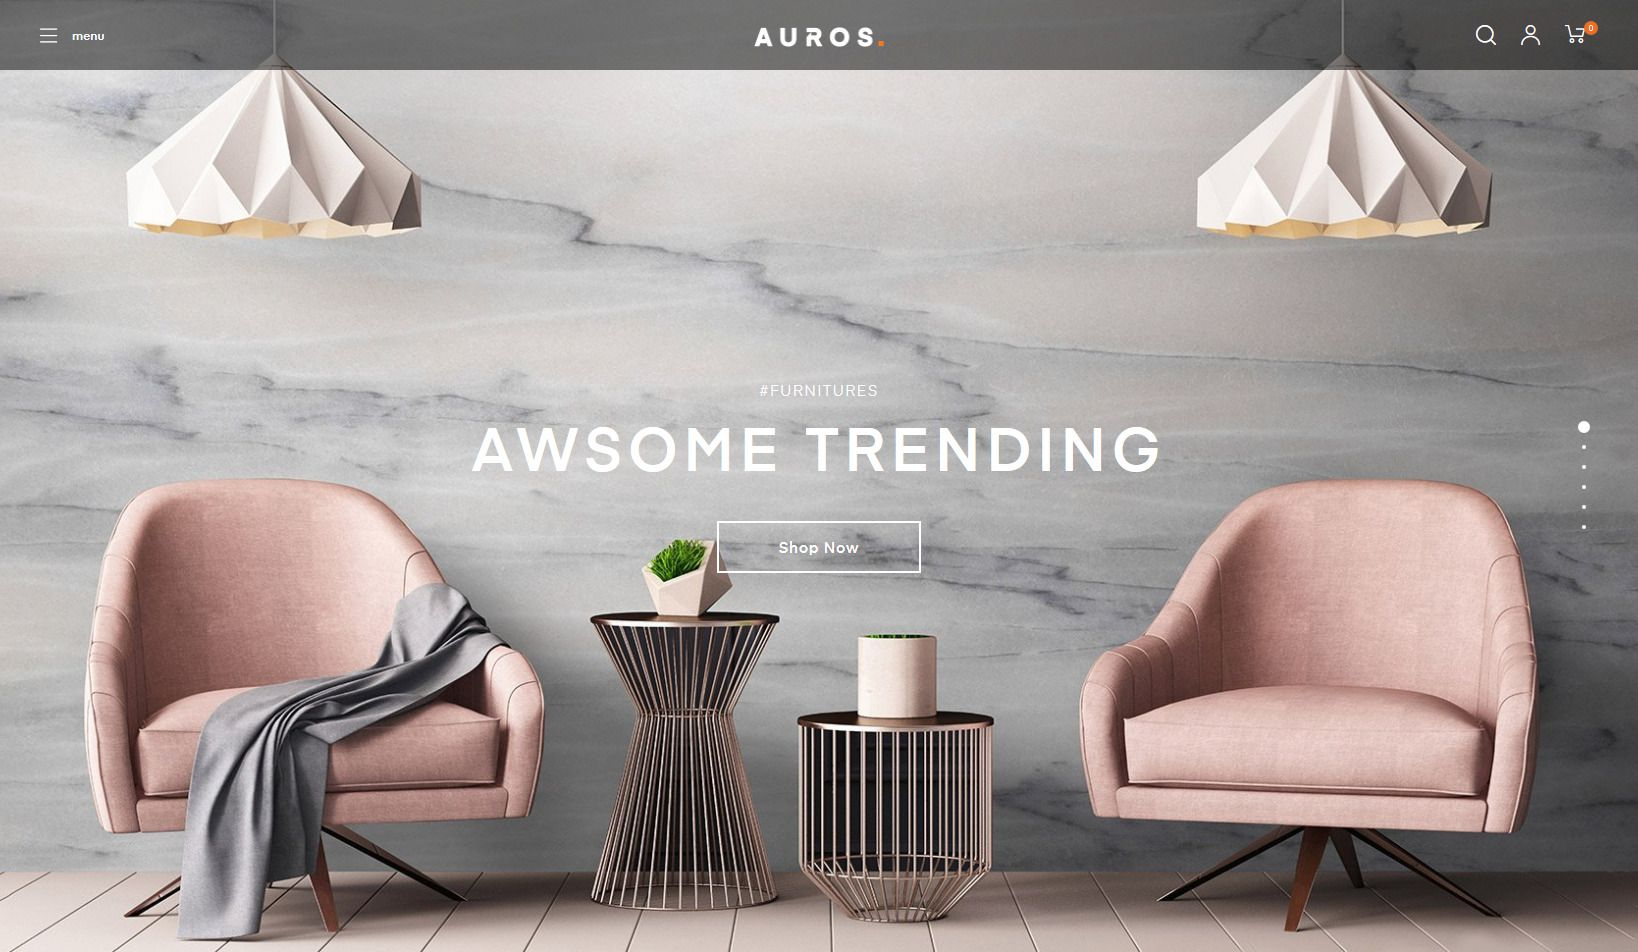 Auros WordPress Theme for online store